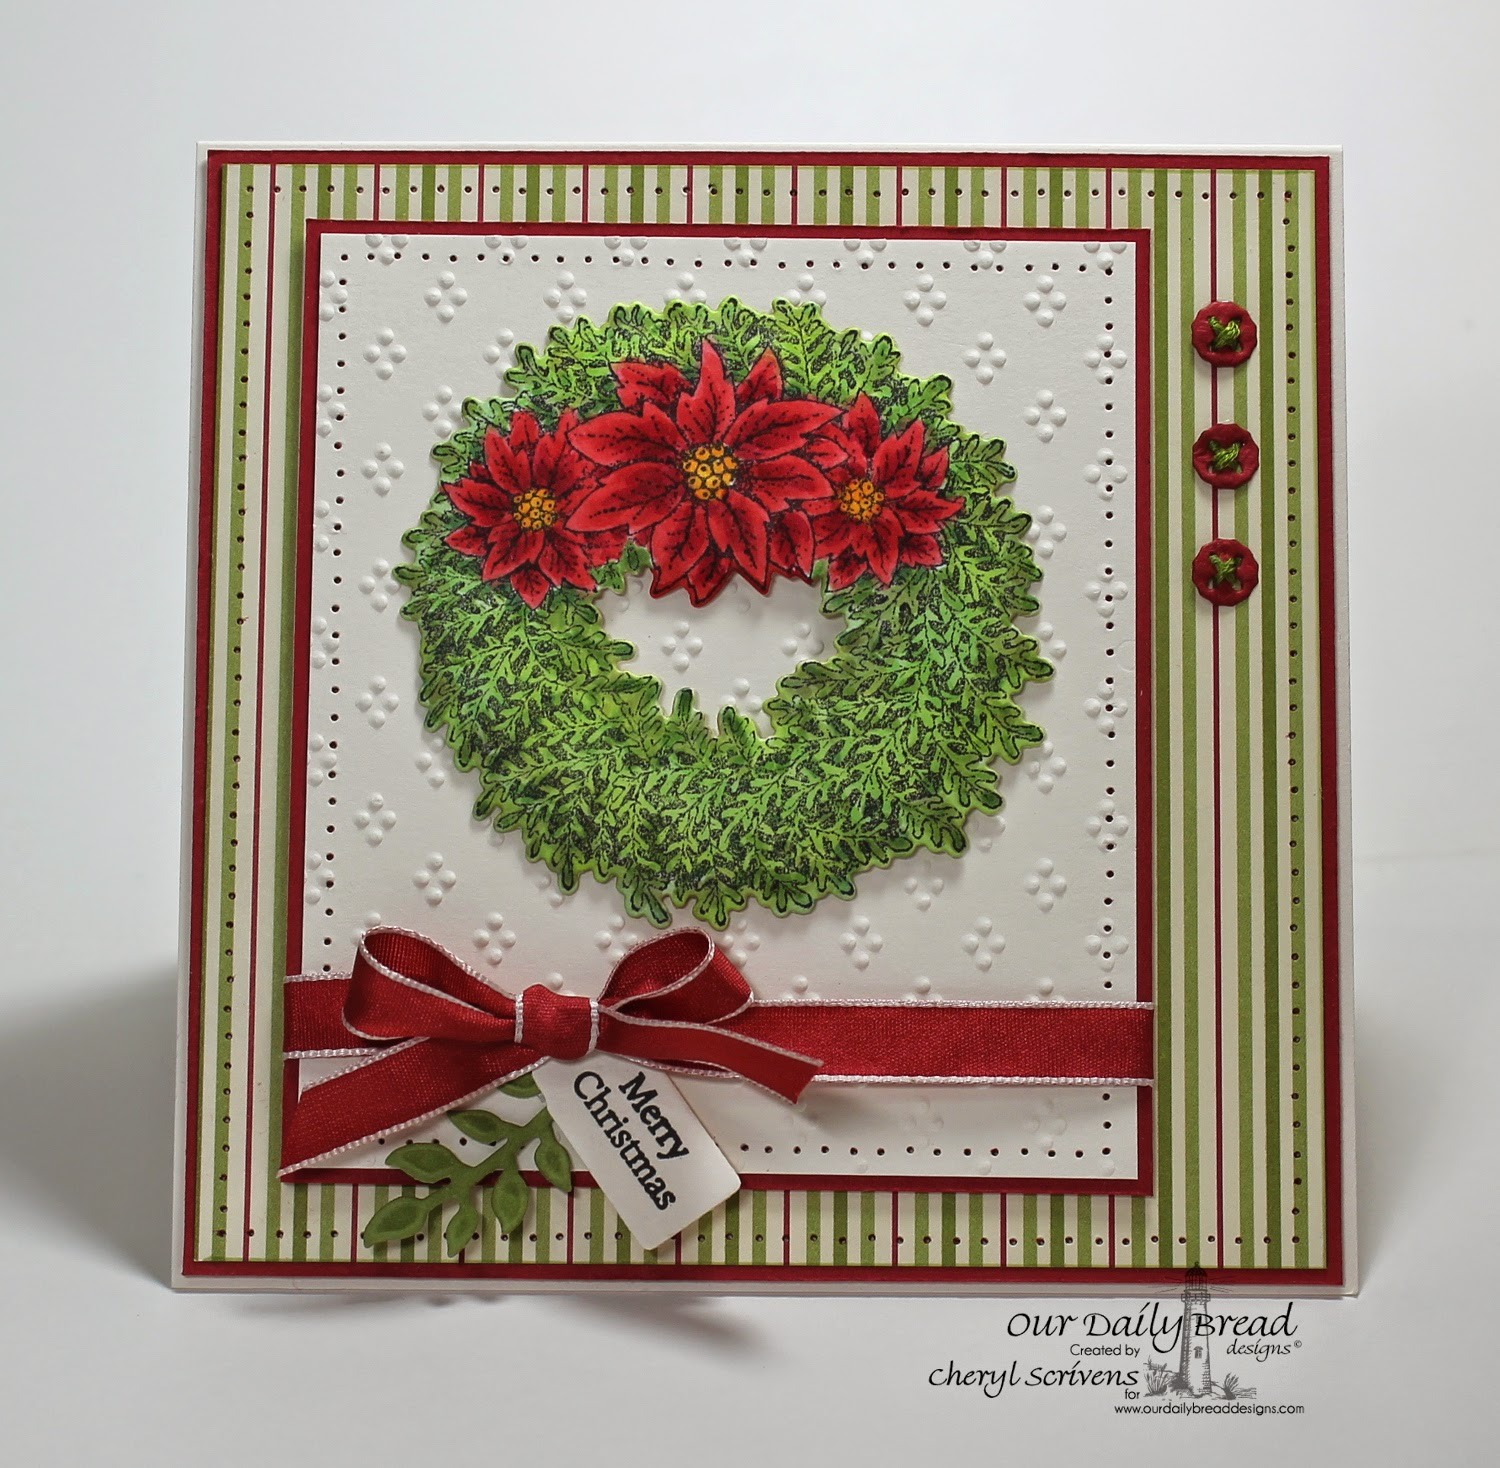 Our Daily Bread Designs, ODBDSLC218, Poinsettia Wreath, Poinsettia Wreath dies, Mini Tag Sentiments, Mini Tags dies, Fancy Foliage dies, Doily dies, CherylQuilts, Designed by Cheryl Scrivens